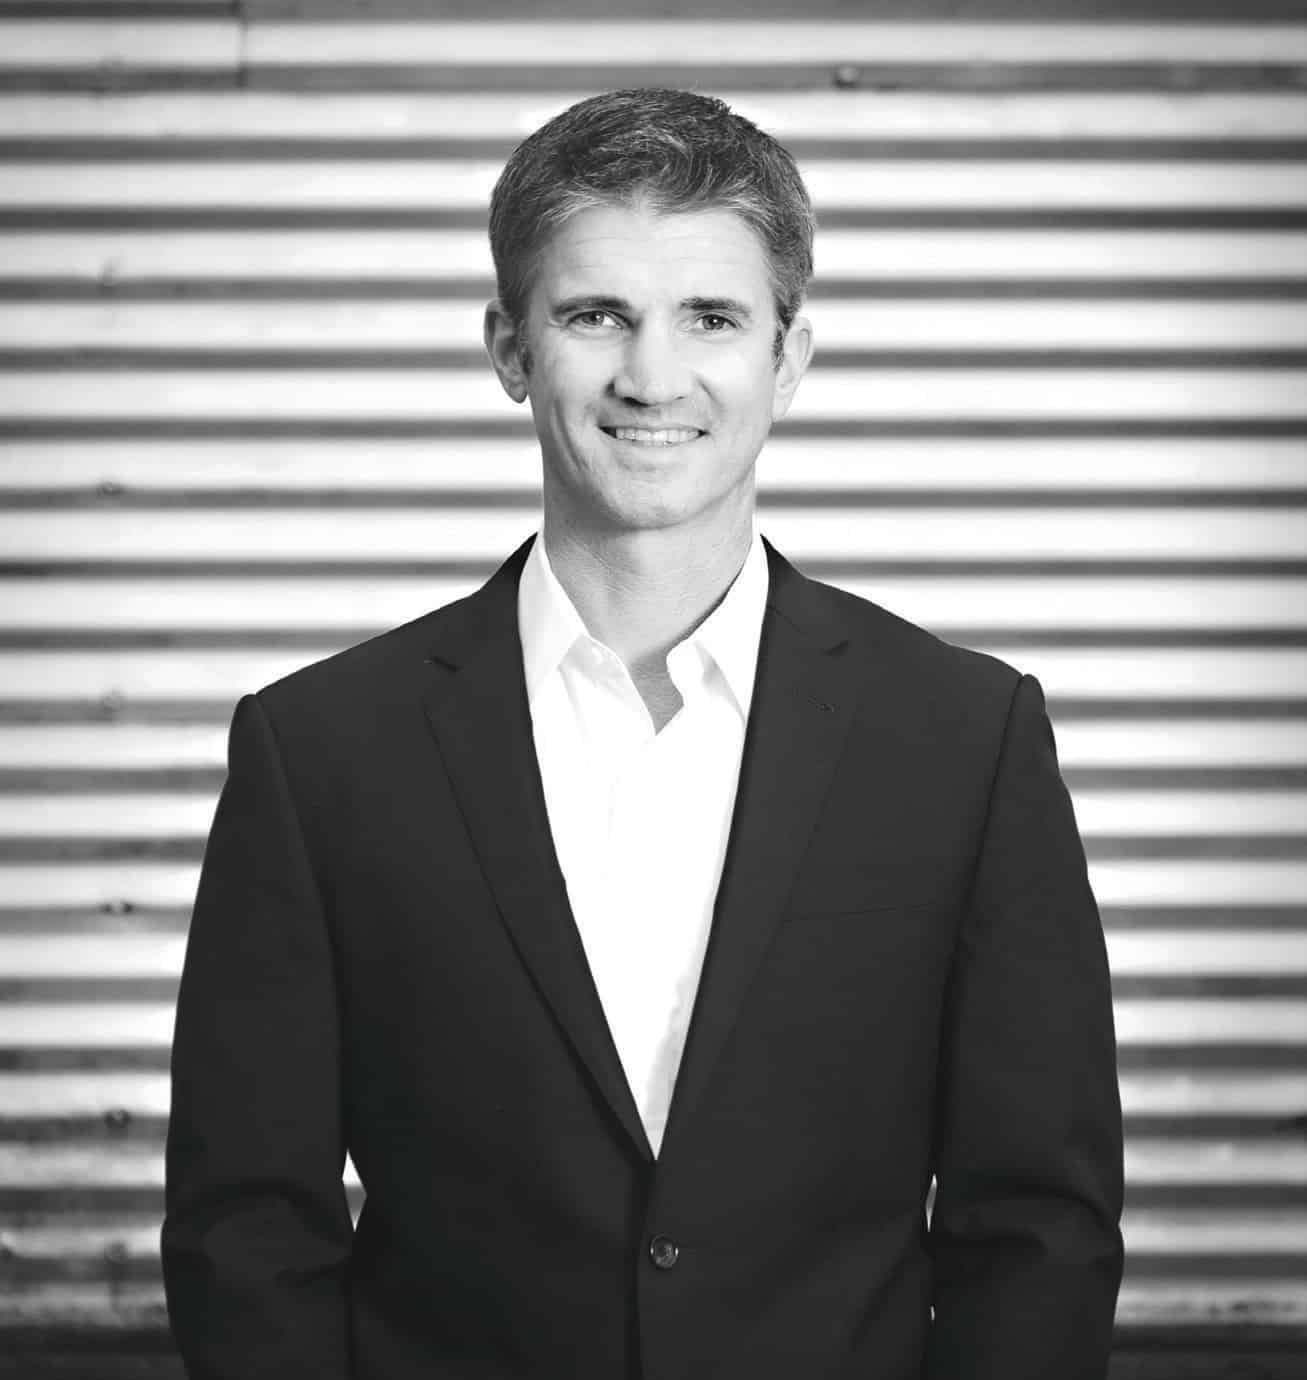 Bence Oliver is CEO of eWind.